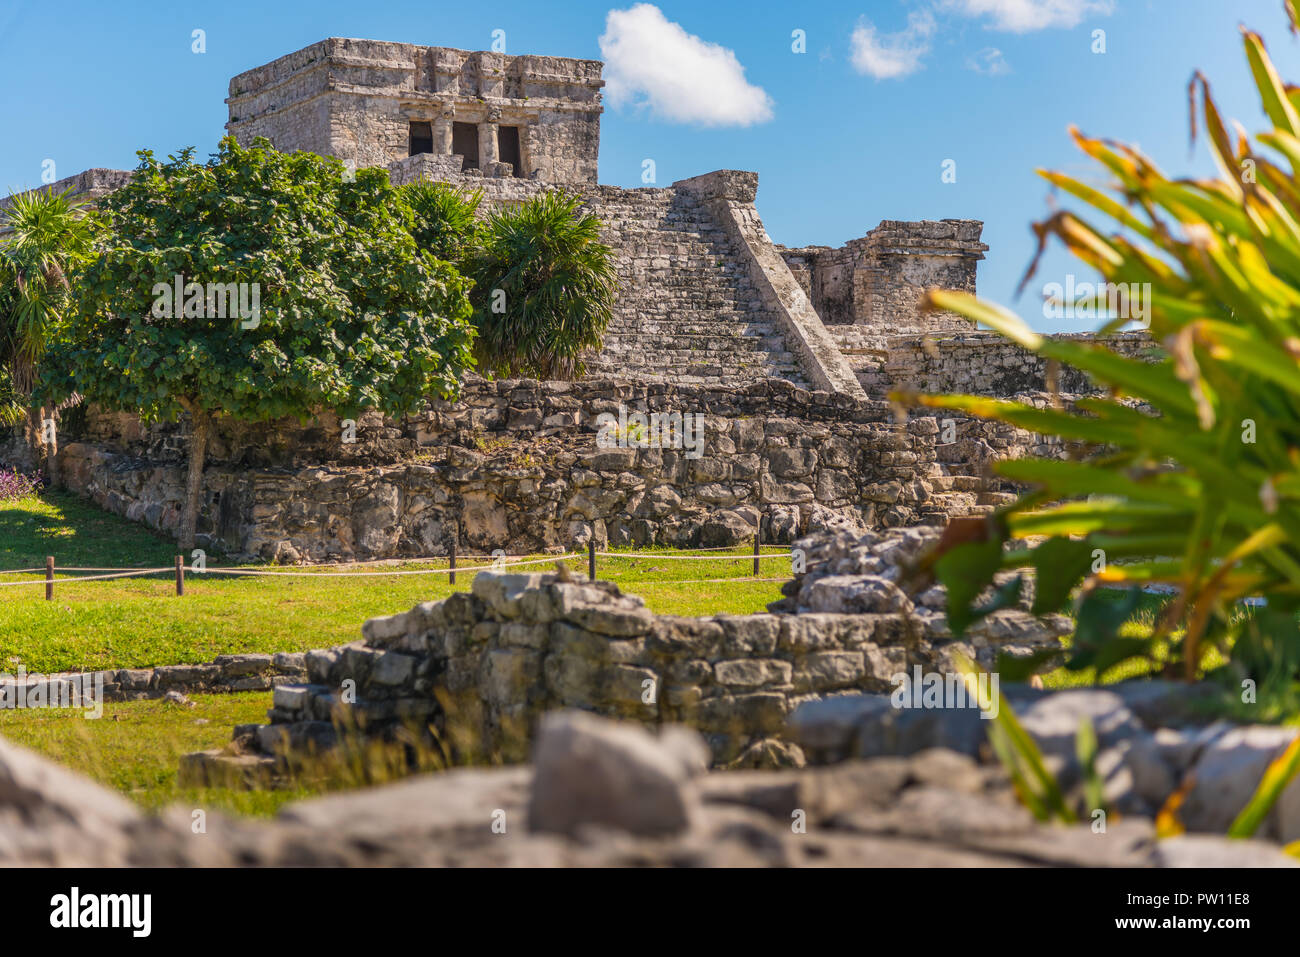 Mayan ruins restored in Tulum, Mexico. Ancient buildings from the maya empire hundreds years ago - Stock Image